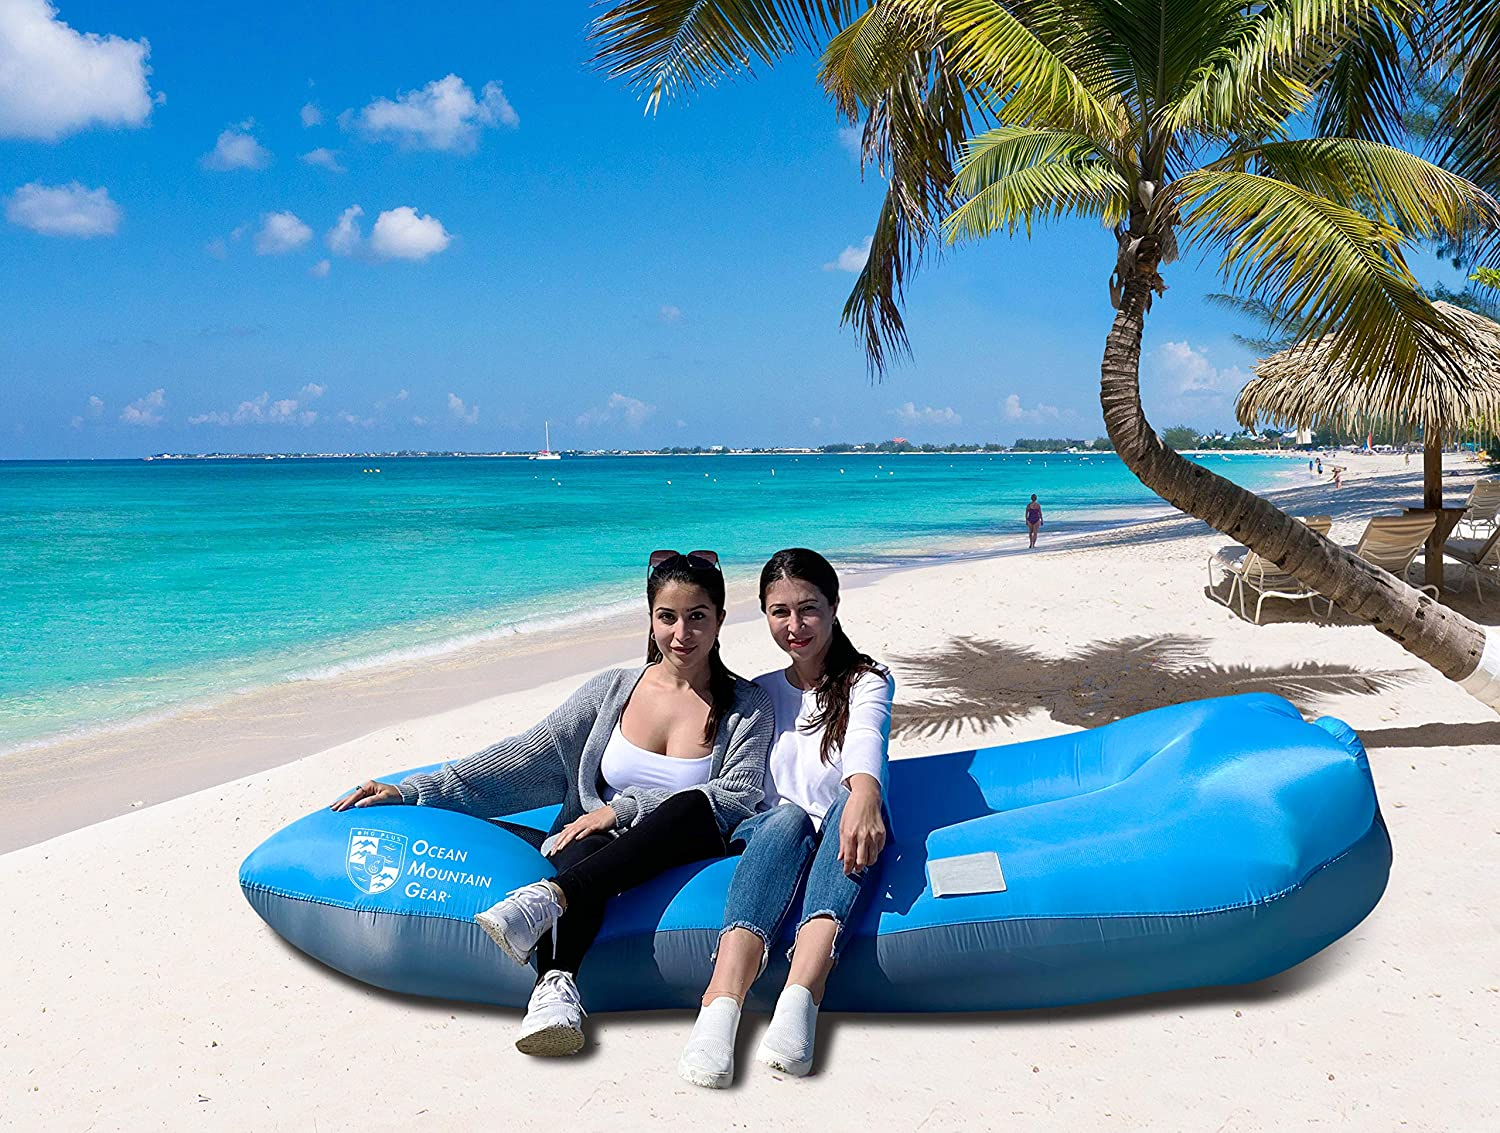 Waterproof Ripstop Nylon for Pool Float Beach OMG Plus Ocean Mountain Gear+ Inflatable Chair Air Lounger Sofa Lightweight and Portable Festival Backyard and Outdoor Use